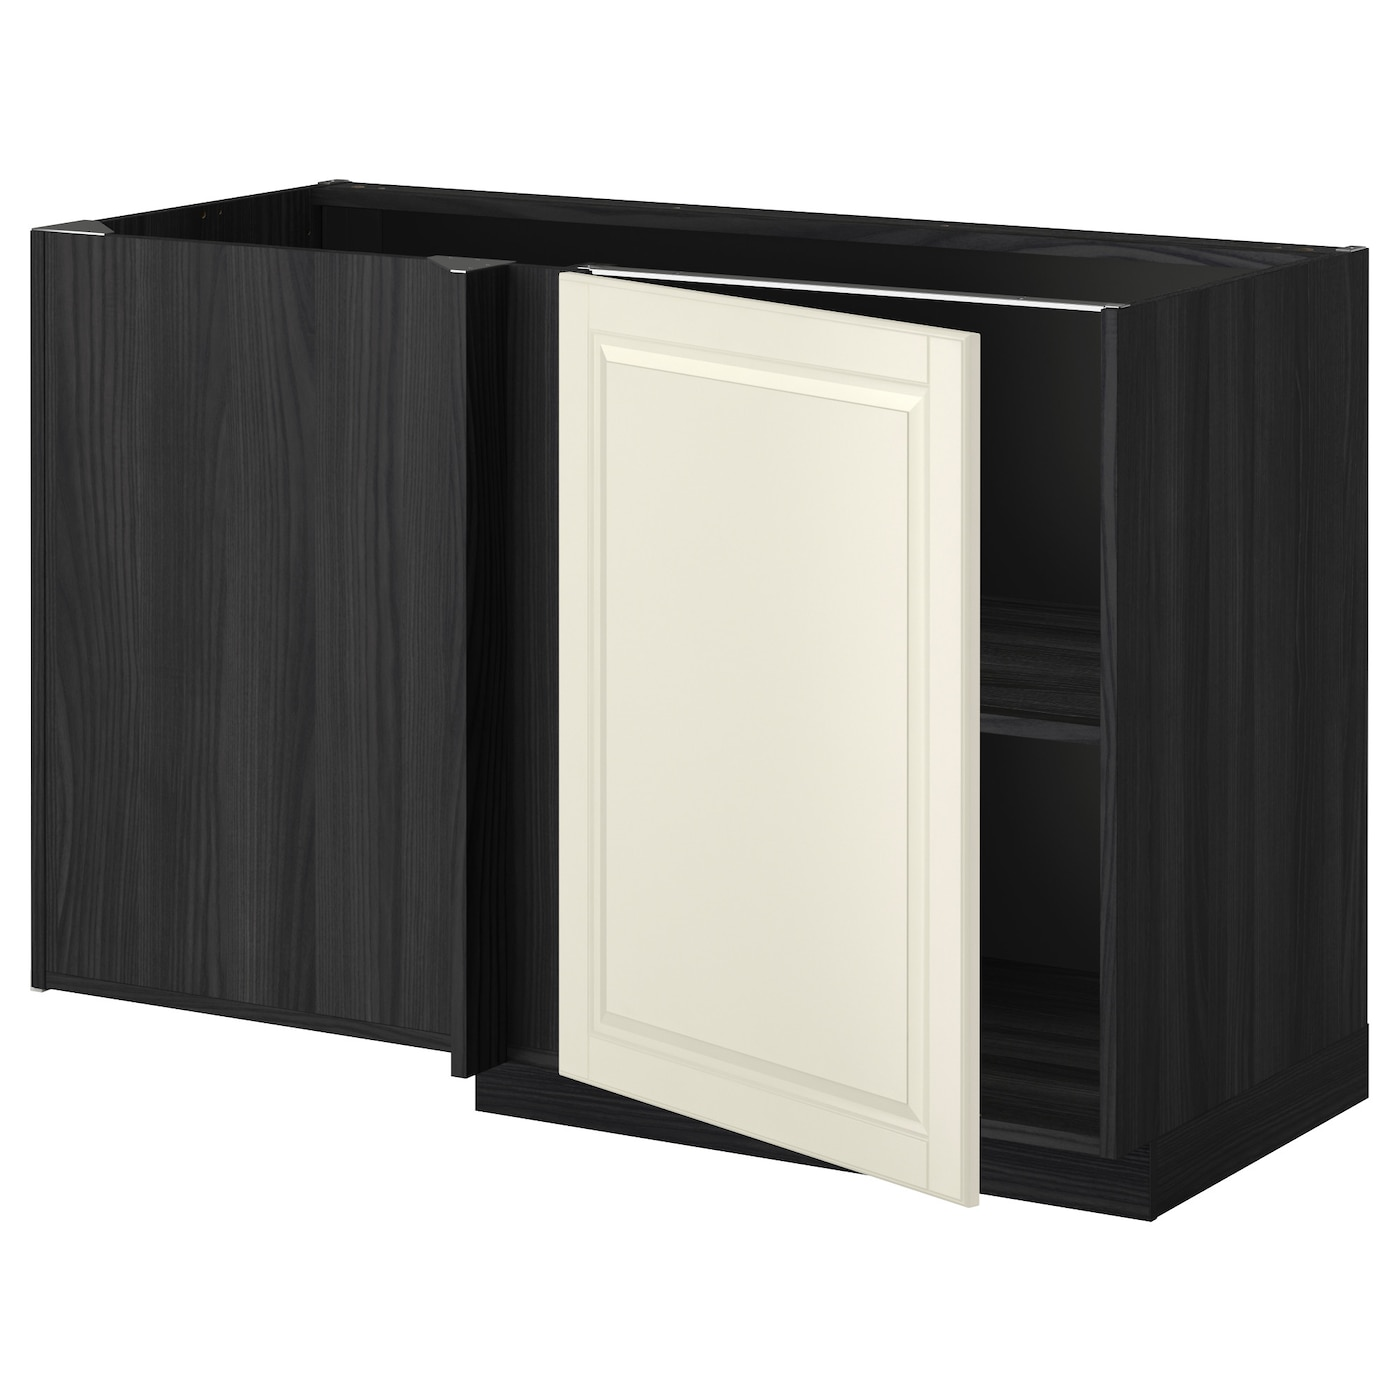 Metod corner base cabinet with shelf black bodbyn off for Off the shelf cabinets